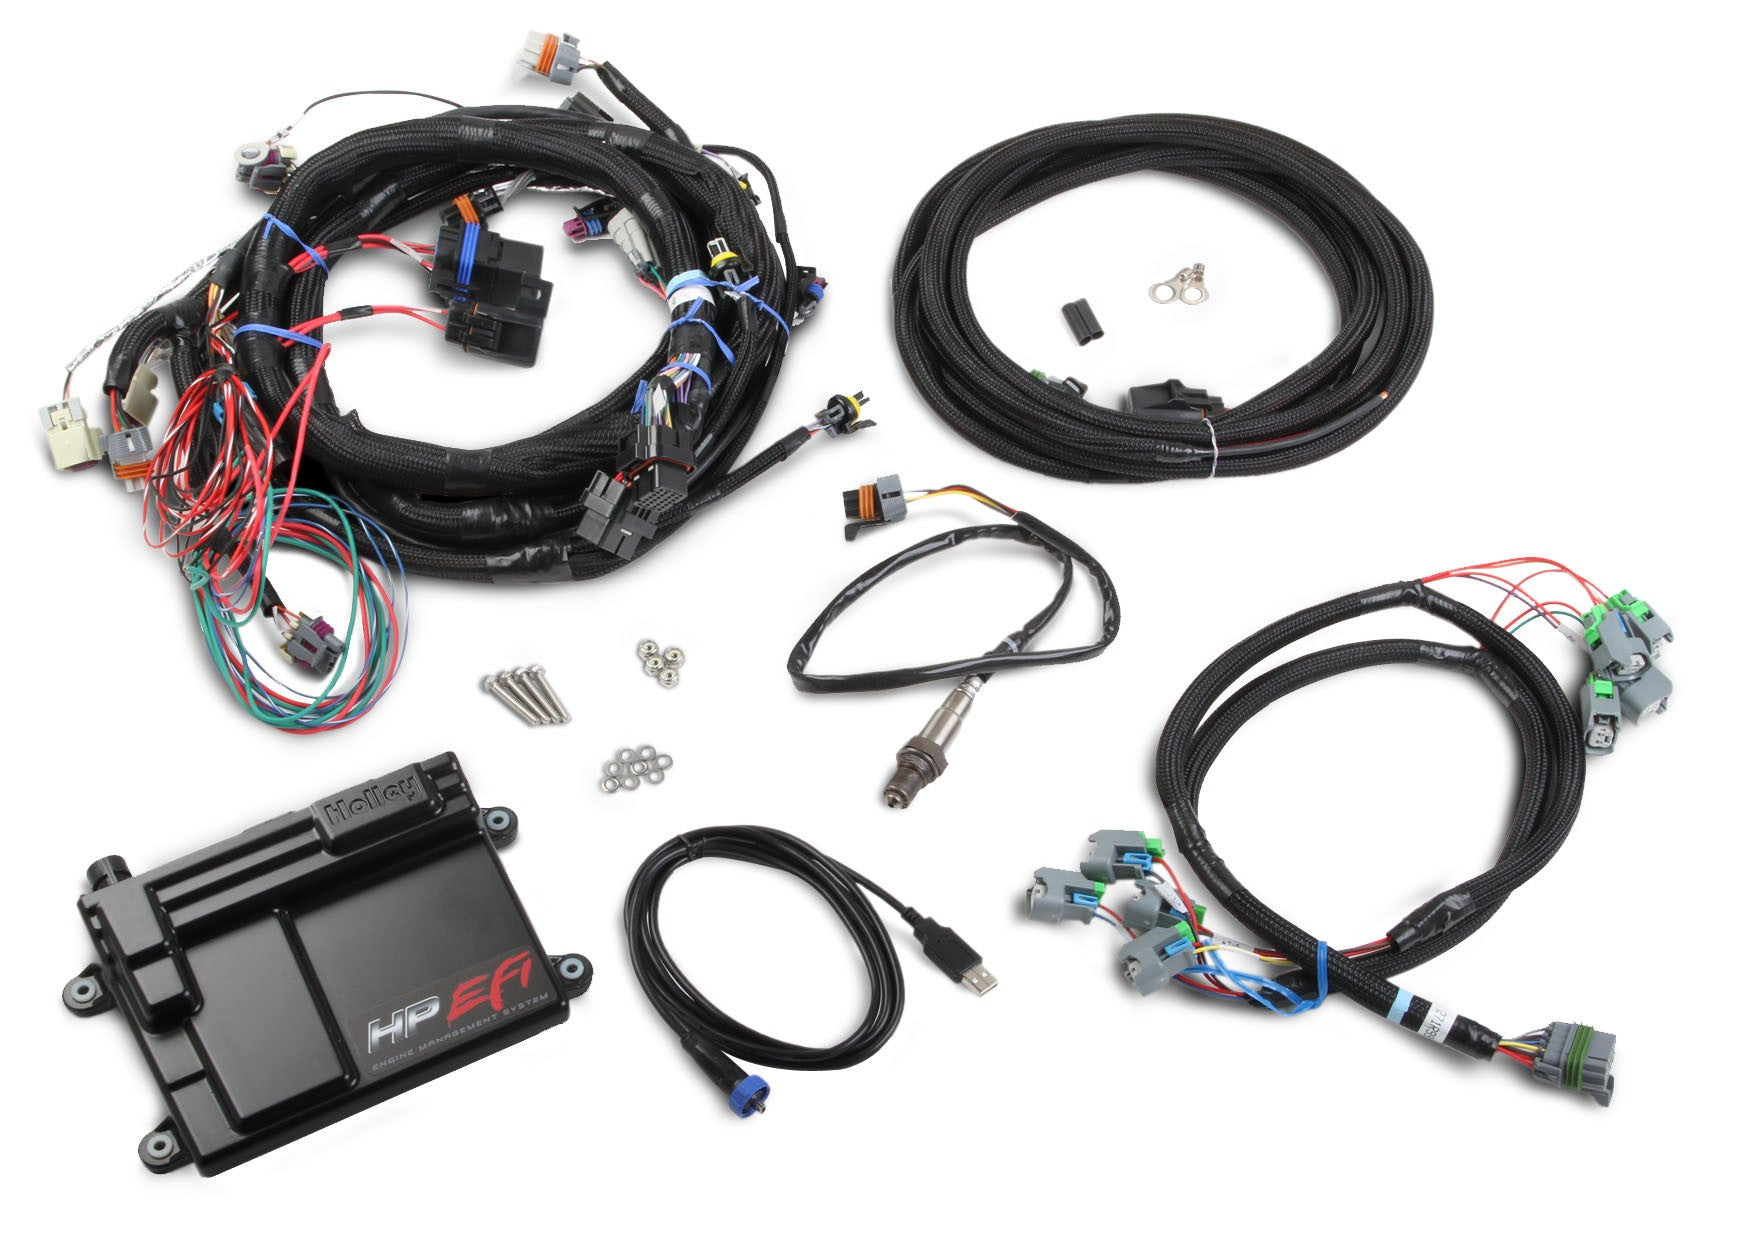 Holley - HP EFI ECU & HARNESS KITS ...